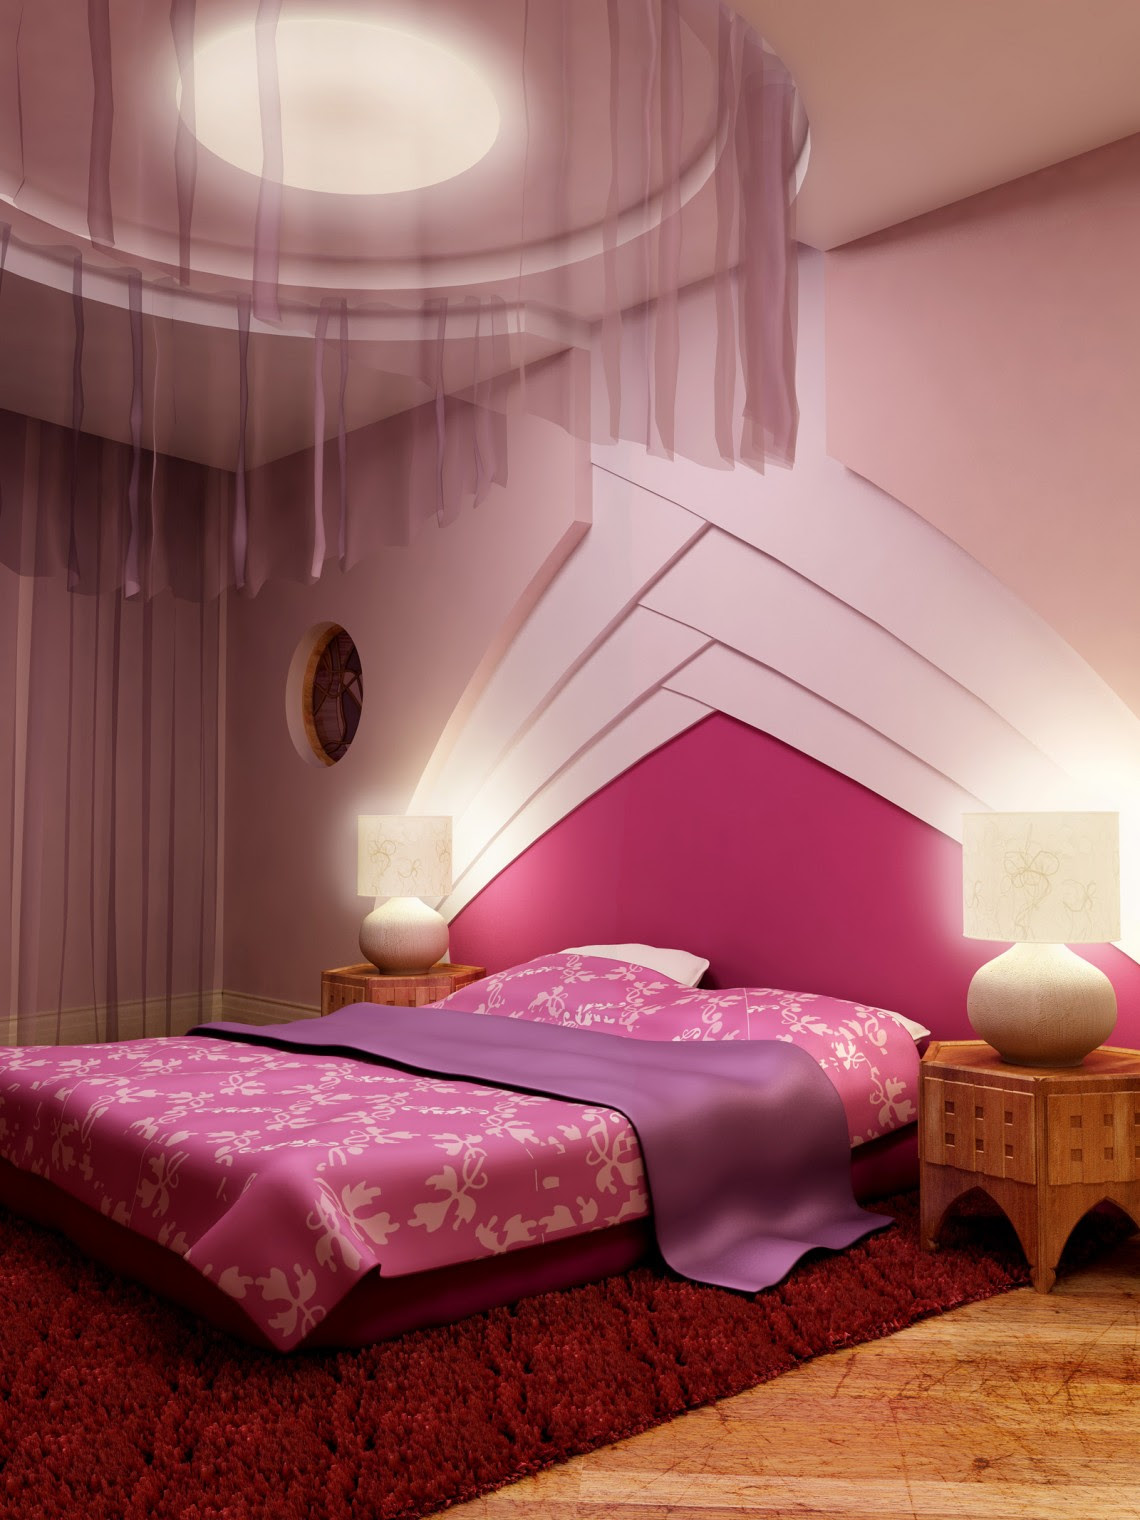 60 Classy And Marvelous Bedroom Wall Design Ideas